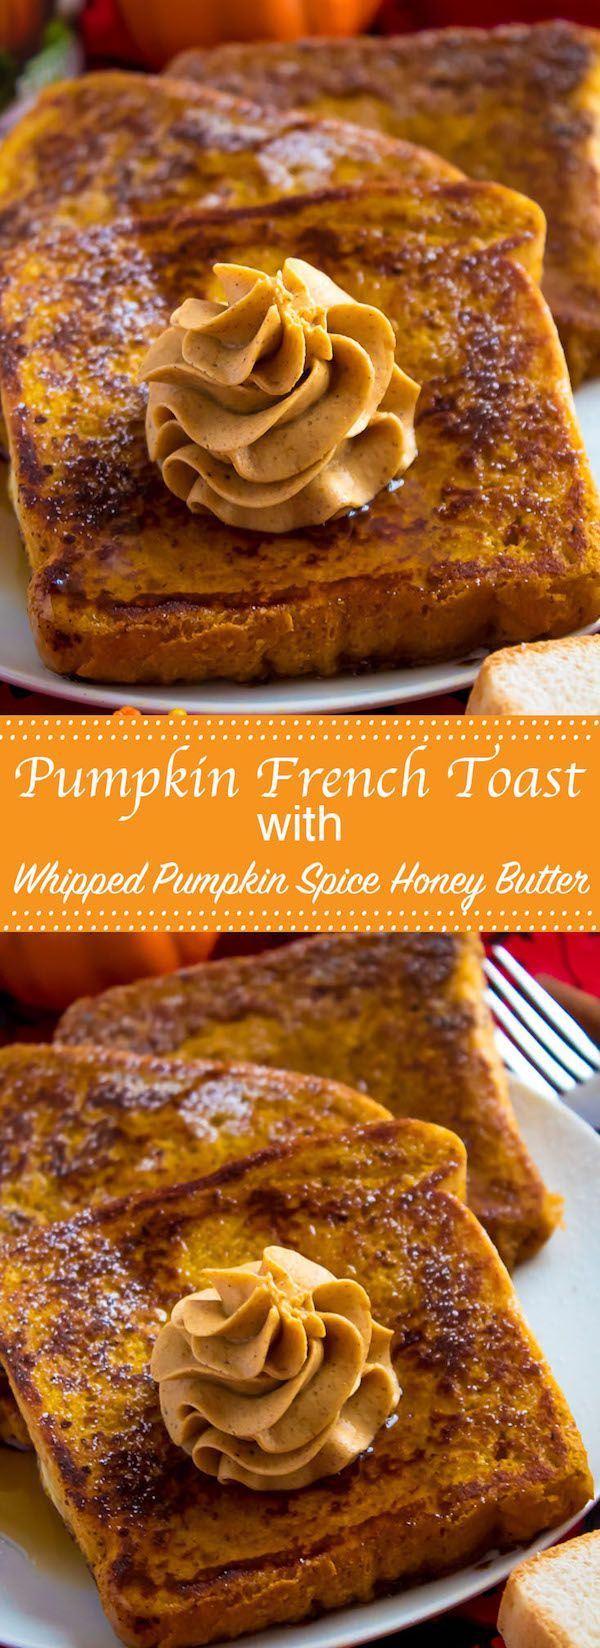 Pumpkin French Toast with Whipped Pumpkin Spice Honey Butter  Enjoy thick slices of Pumpkin French Toast perfect for fall mornings Serve with a dust of powdered